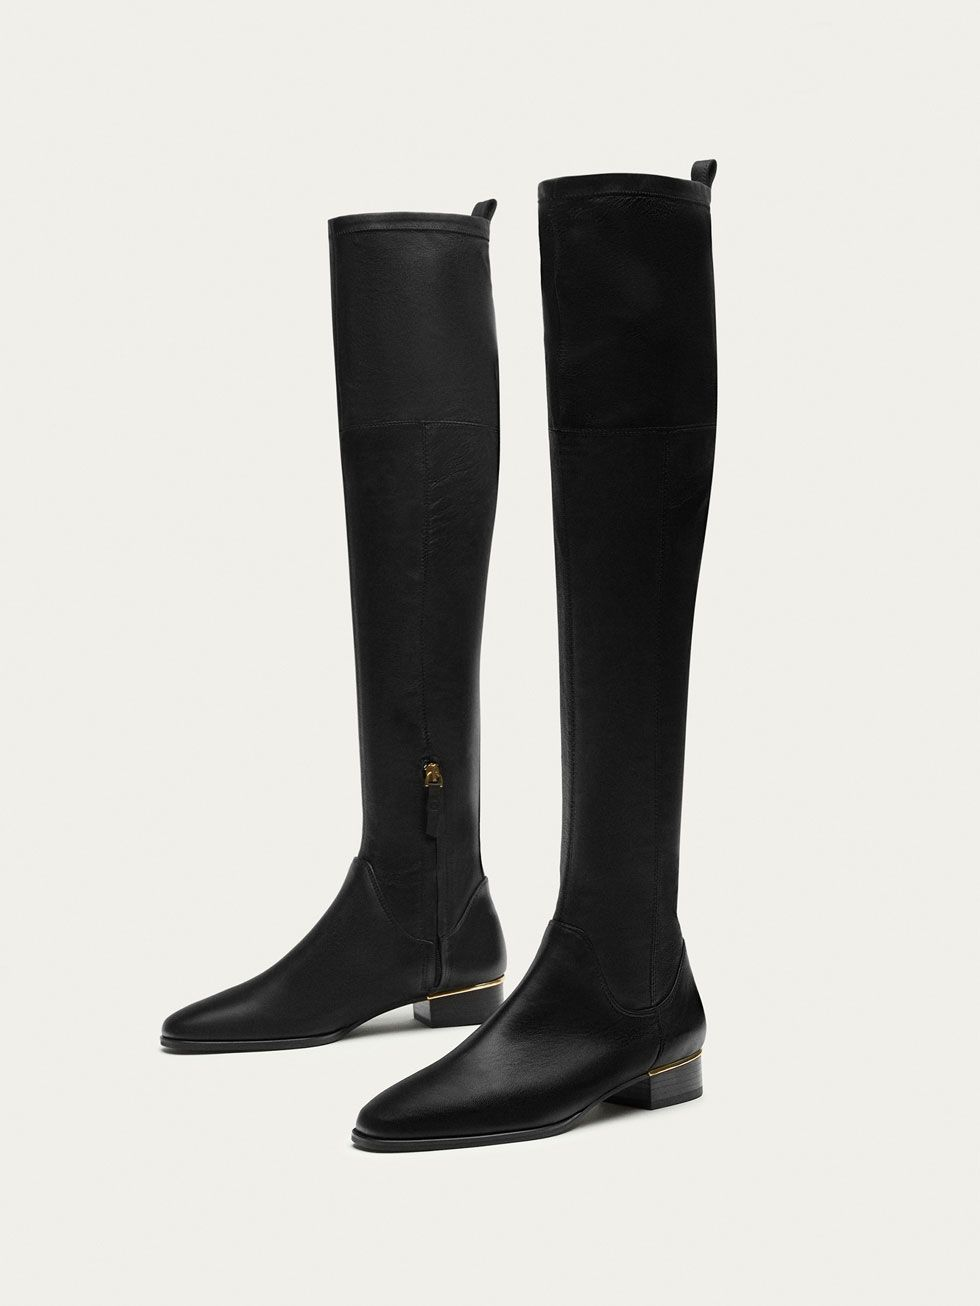 0c4eb3d1ed9 Fall Winter 2017 Women´s BLACK LEATHER KNEE-HIGH BOOTS at Massimo Dutti for  225. Effortless elegance!